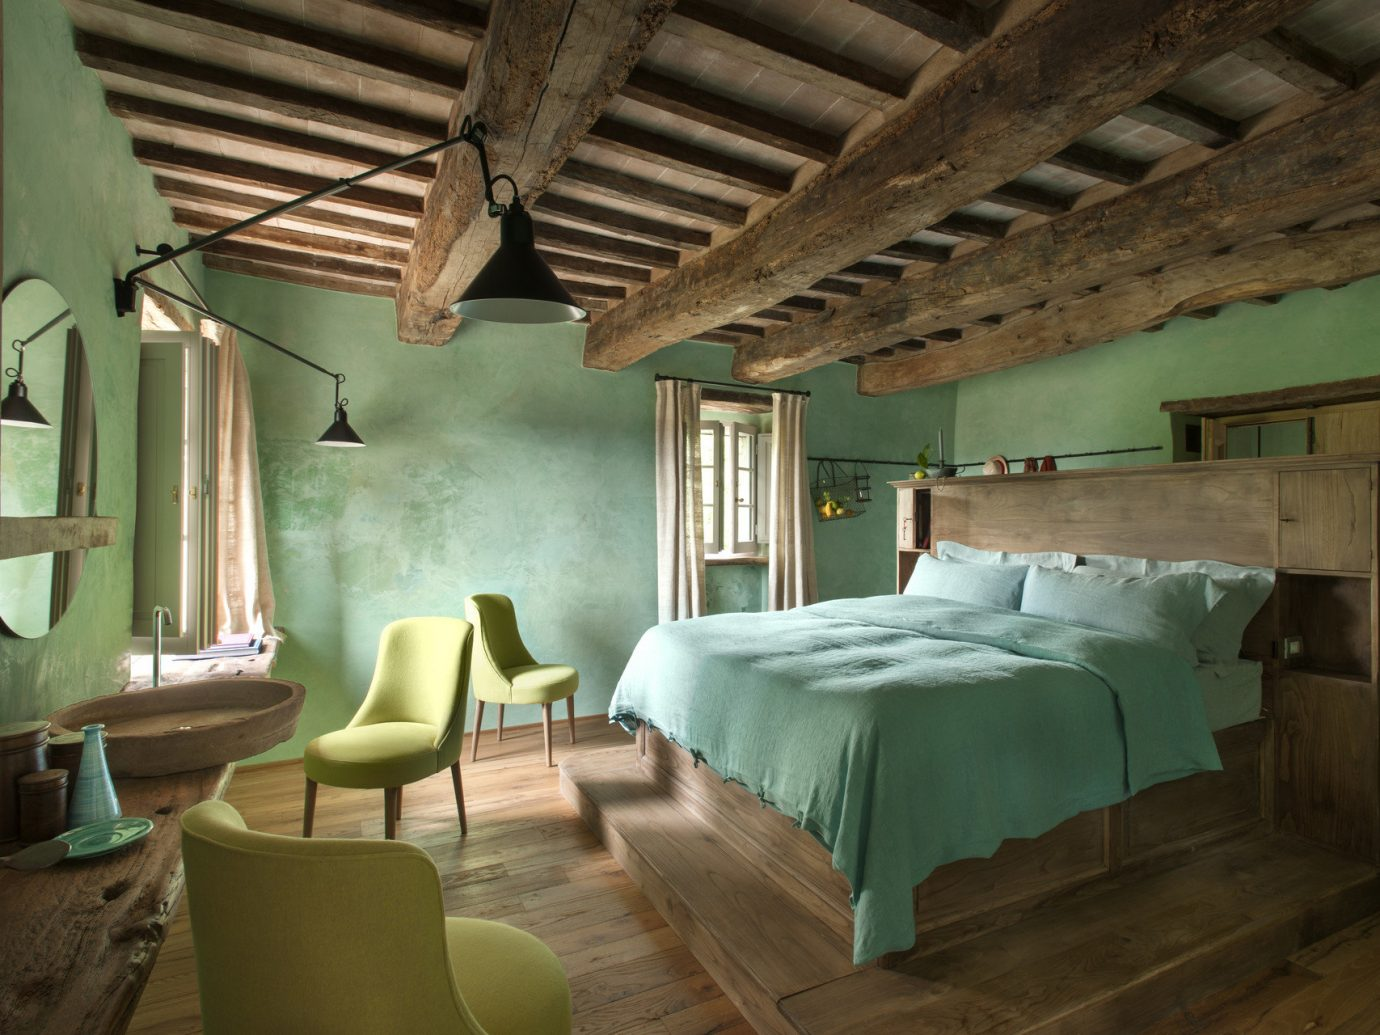 bed Bedroom charming cozy europe homey Hotels interior quaint Rustic indoor wall floor room ceiling green property chair building house estate cottage interior design home farmhouse Villa living room hotel mansion furniture area lamp